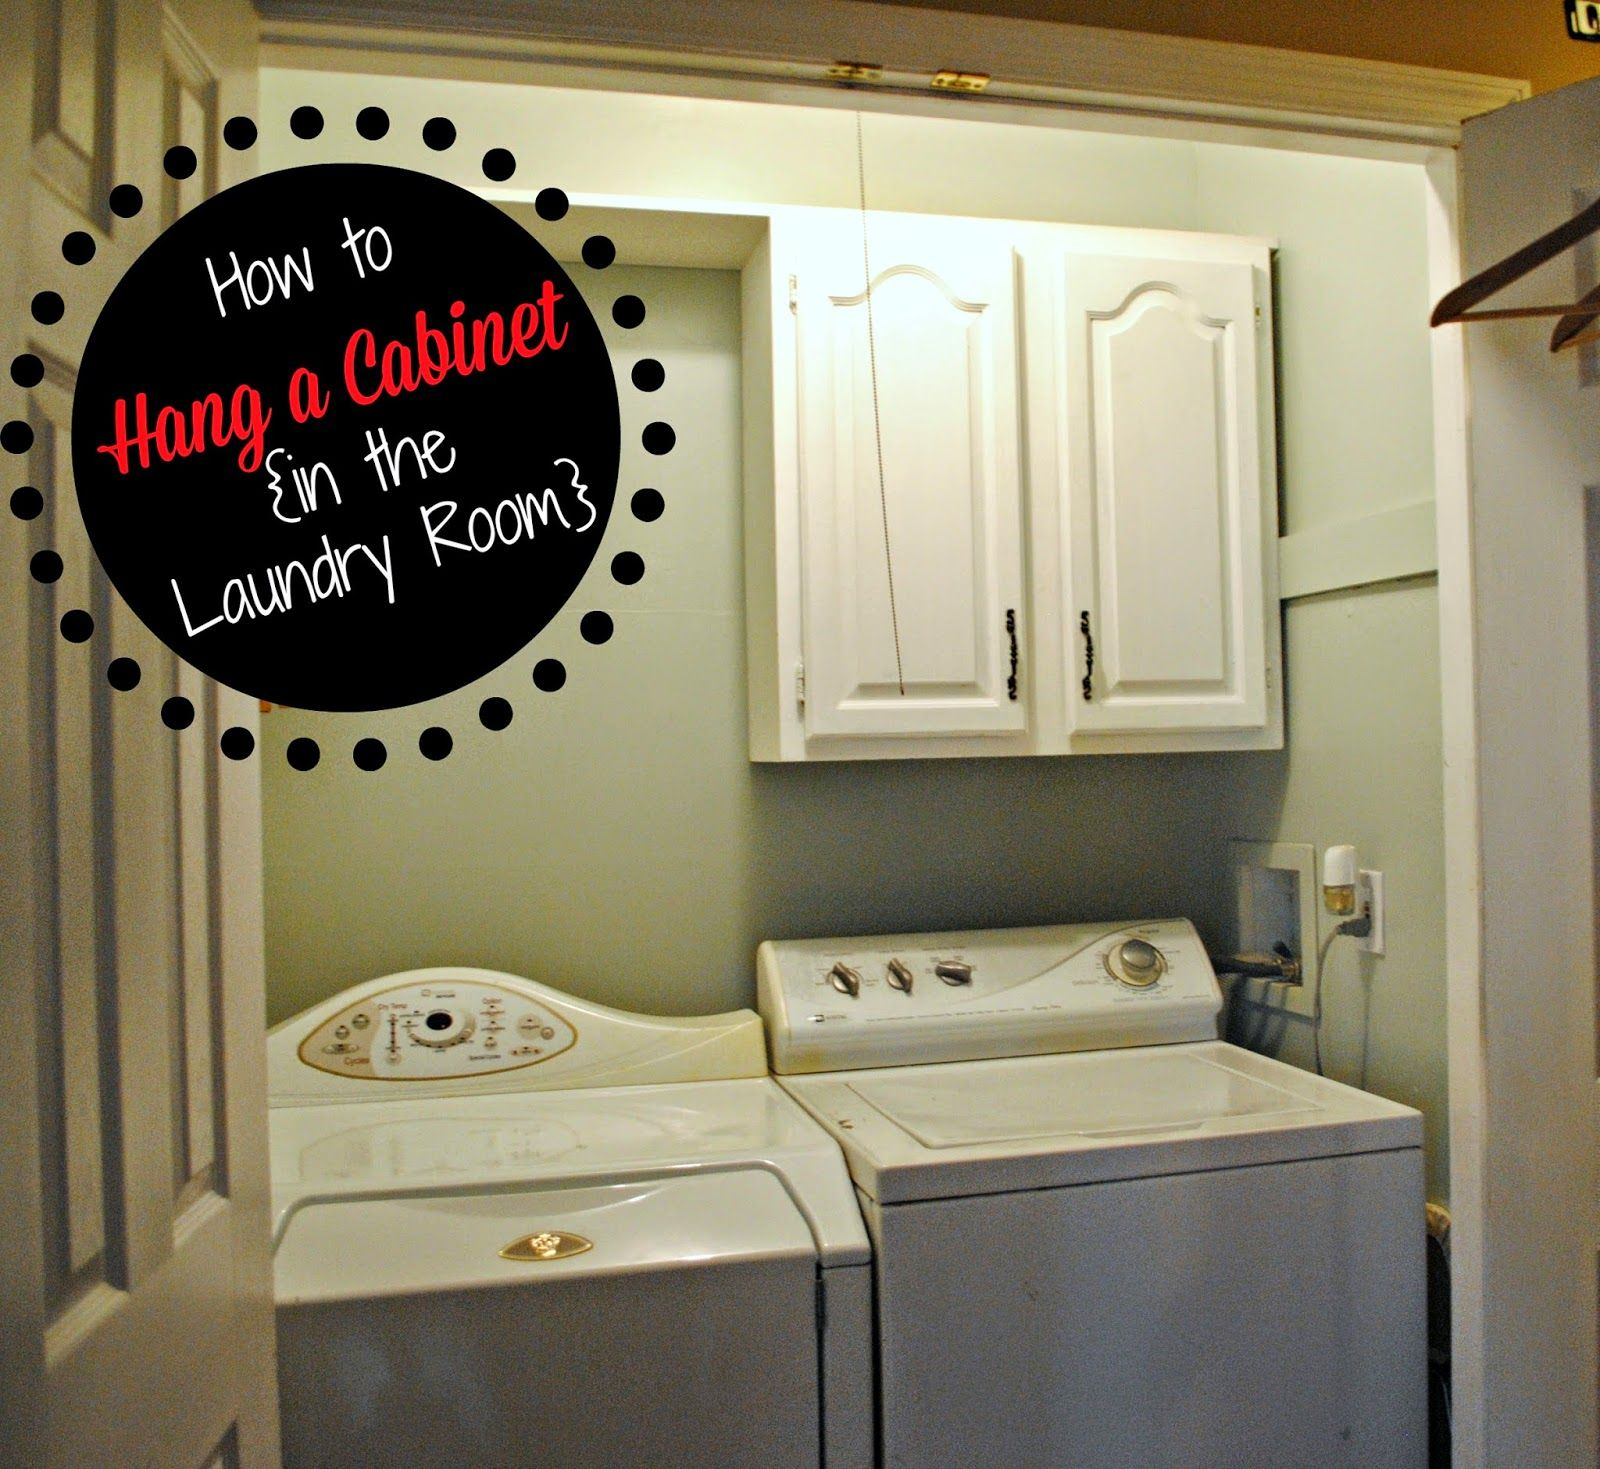 15 Thrifted Cabinet Makeover For Laundry Room Storage, Cabinets, Laundry